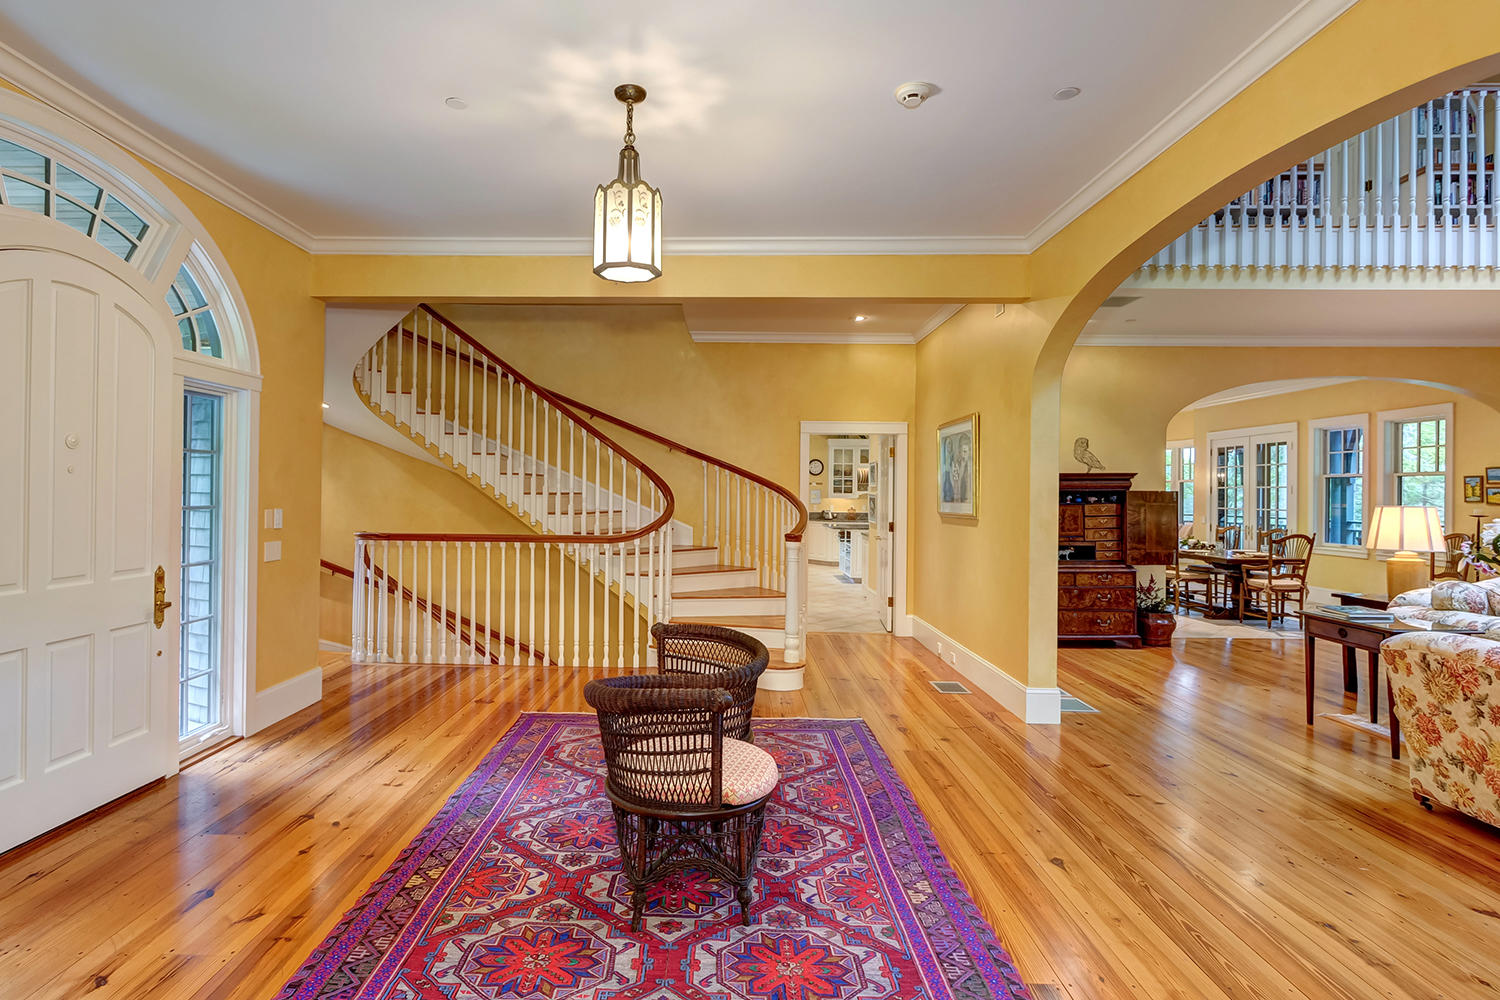 16-1.Entry-Grt Room-to foyer:stairs